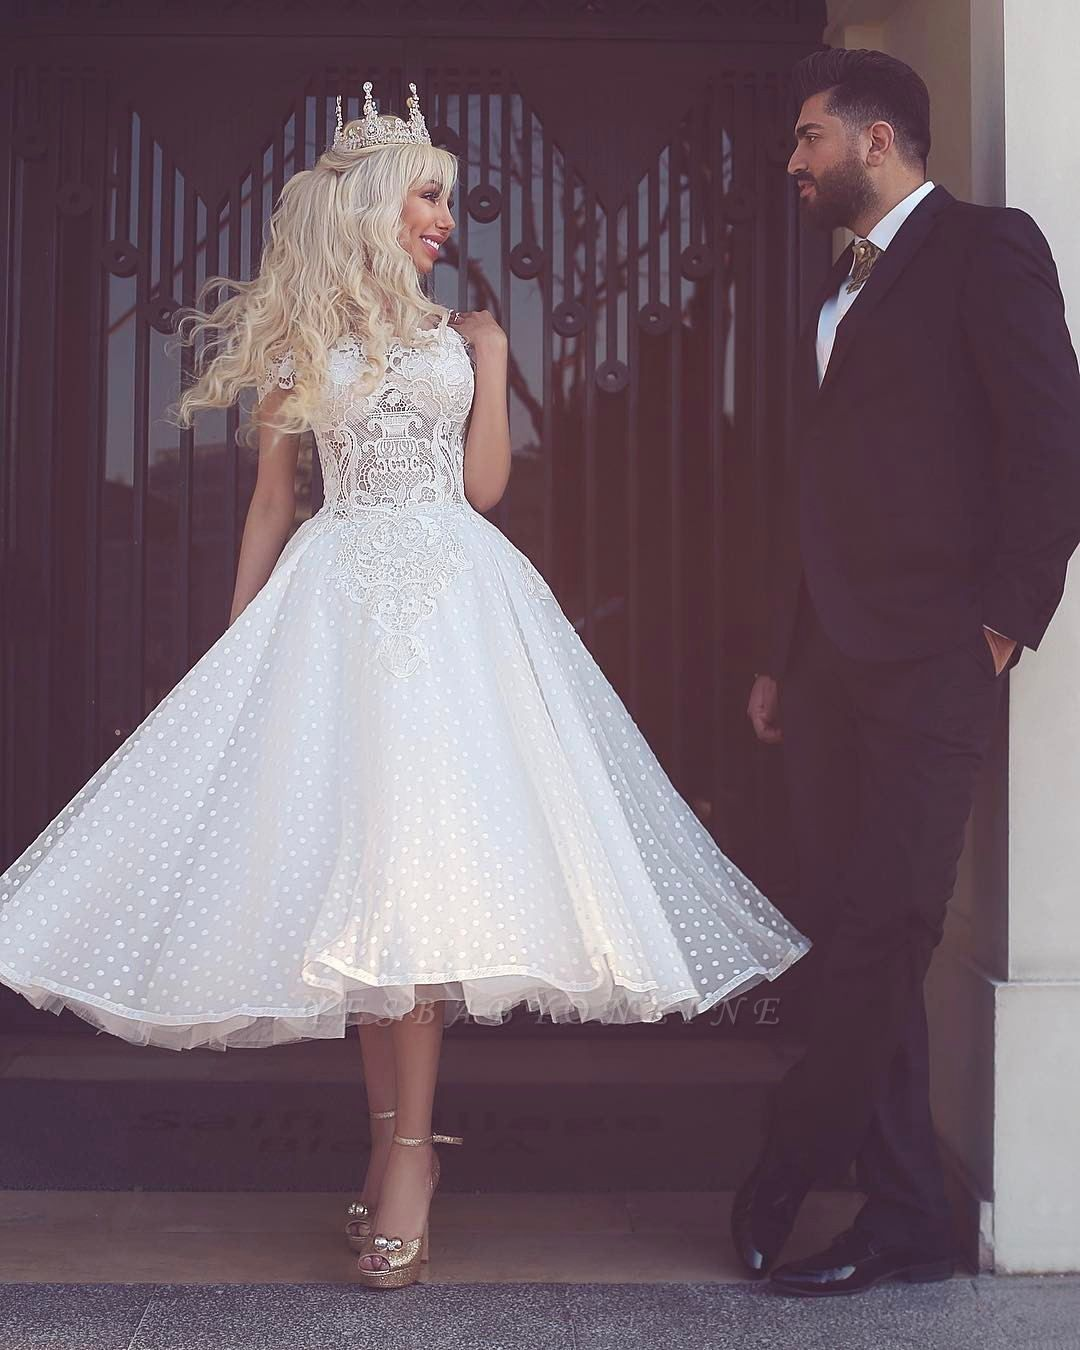 Sparkly White Off-the-Shoulder Ball-Gown Wedding Dress